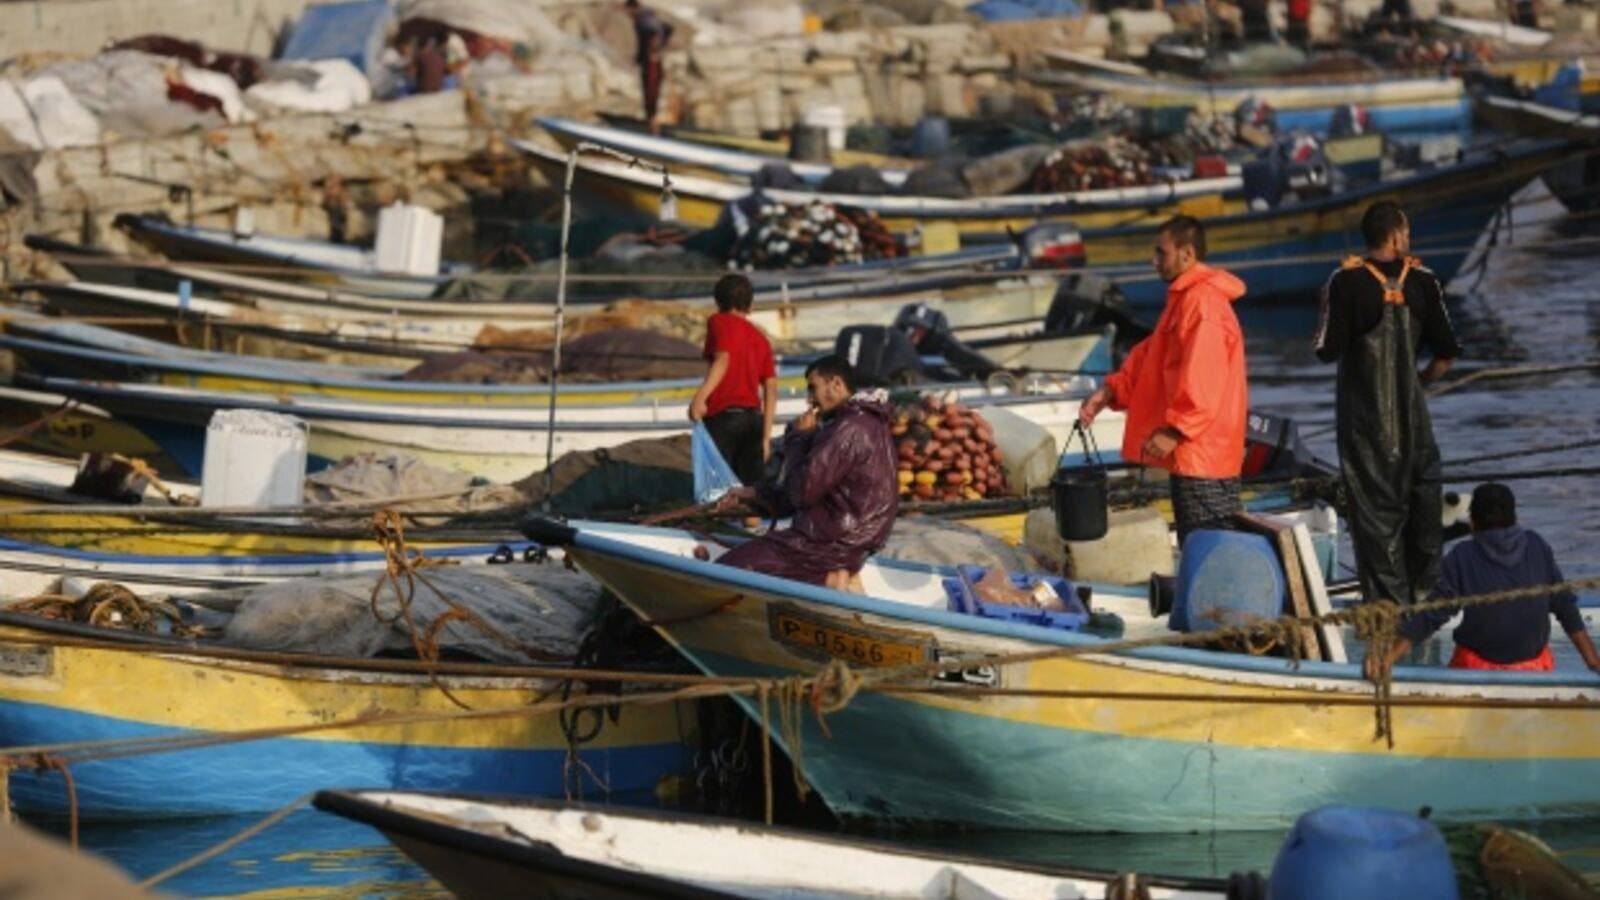 Fisherman in Gaza (AFP/File Photo)